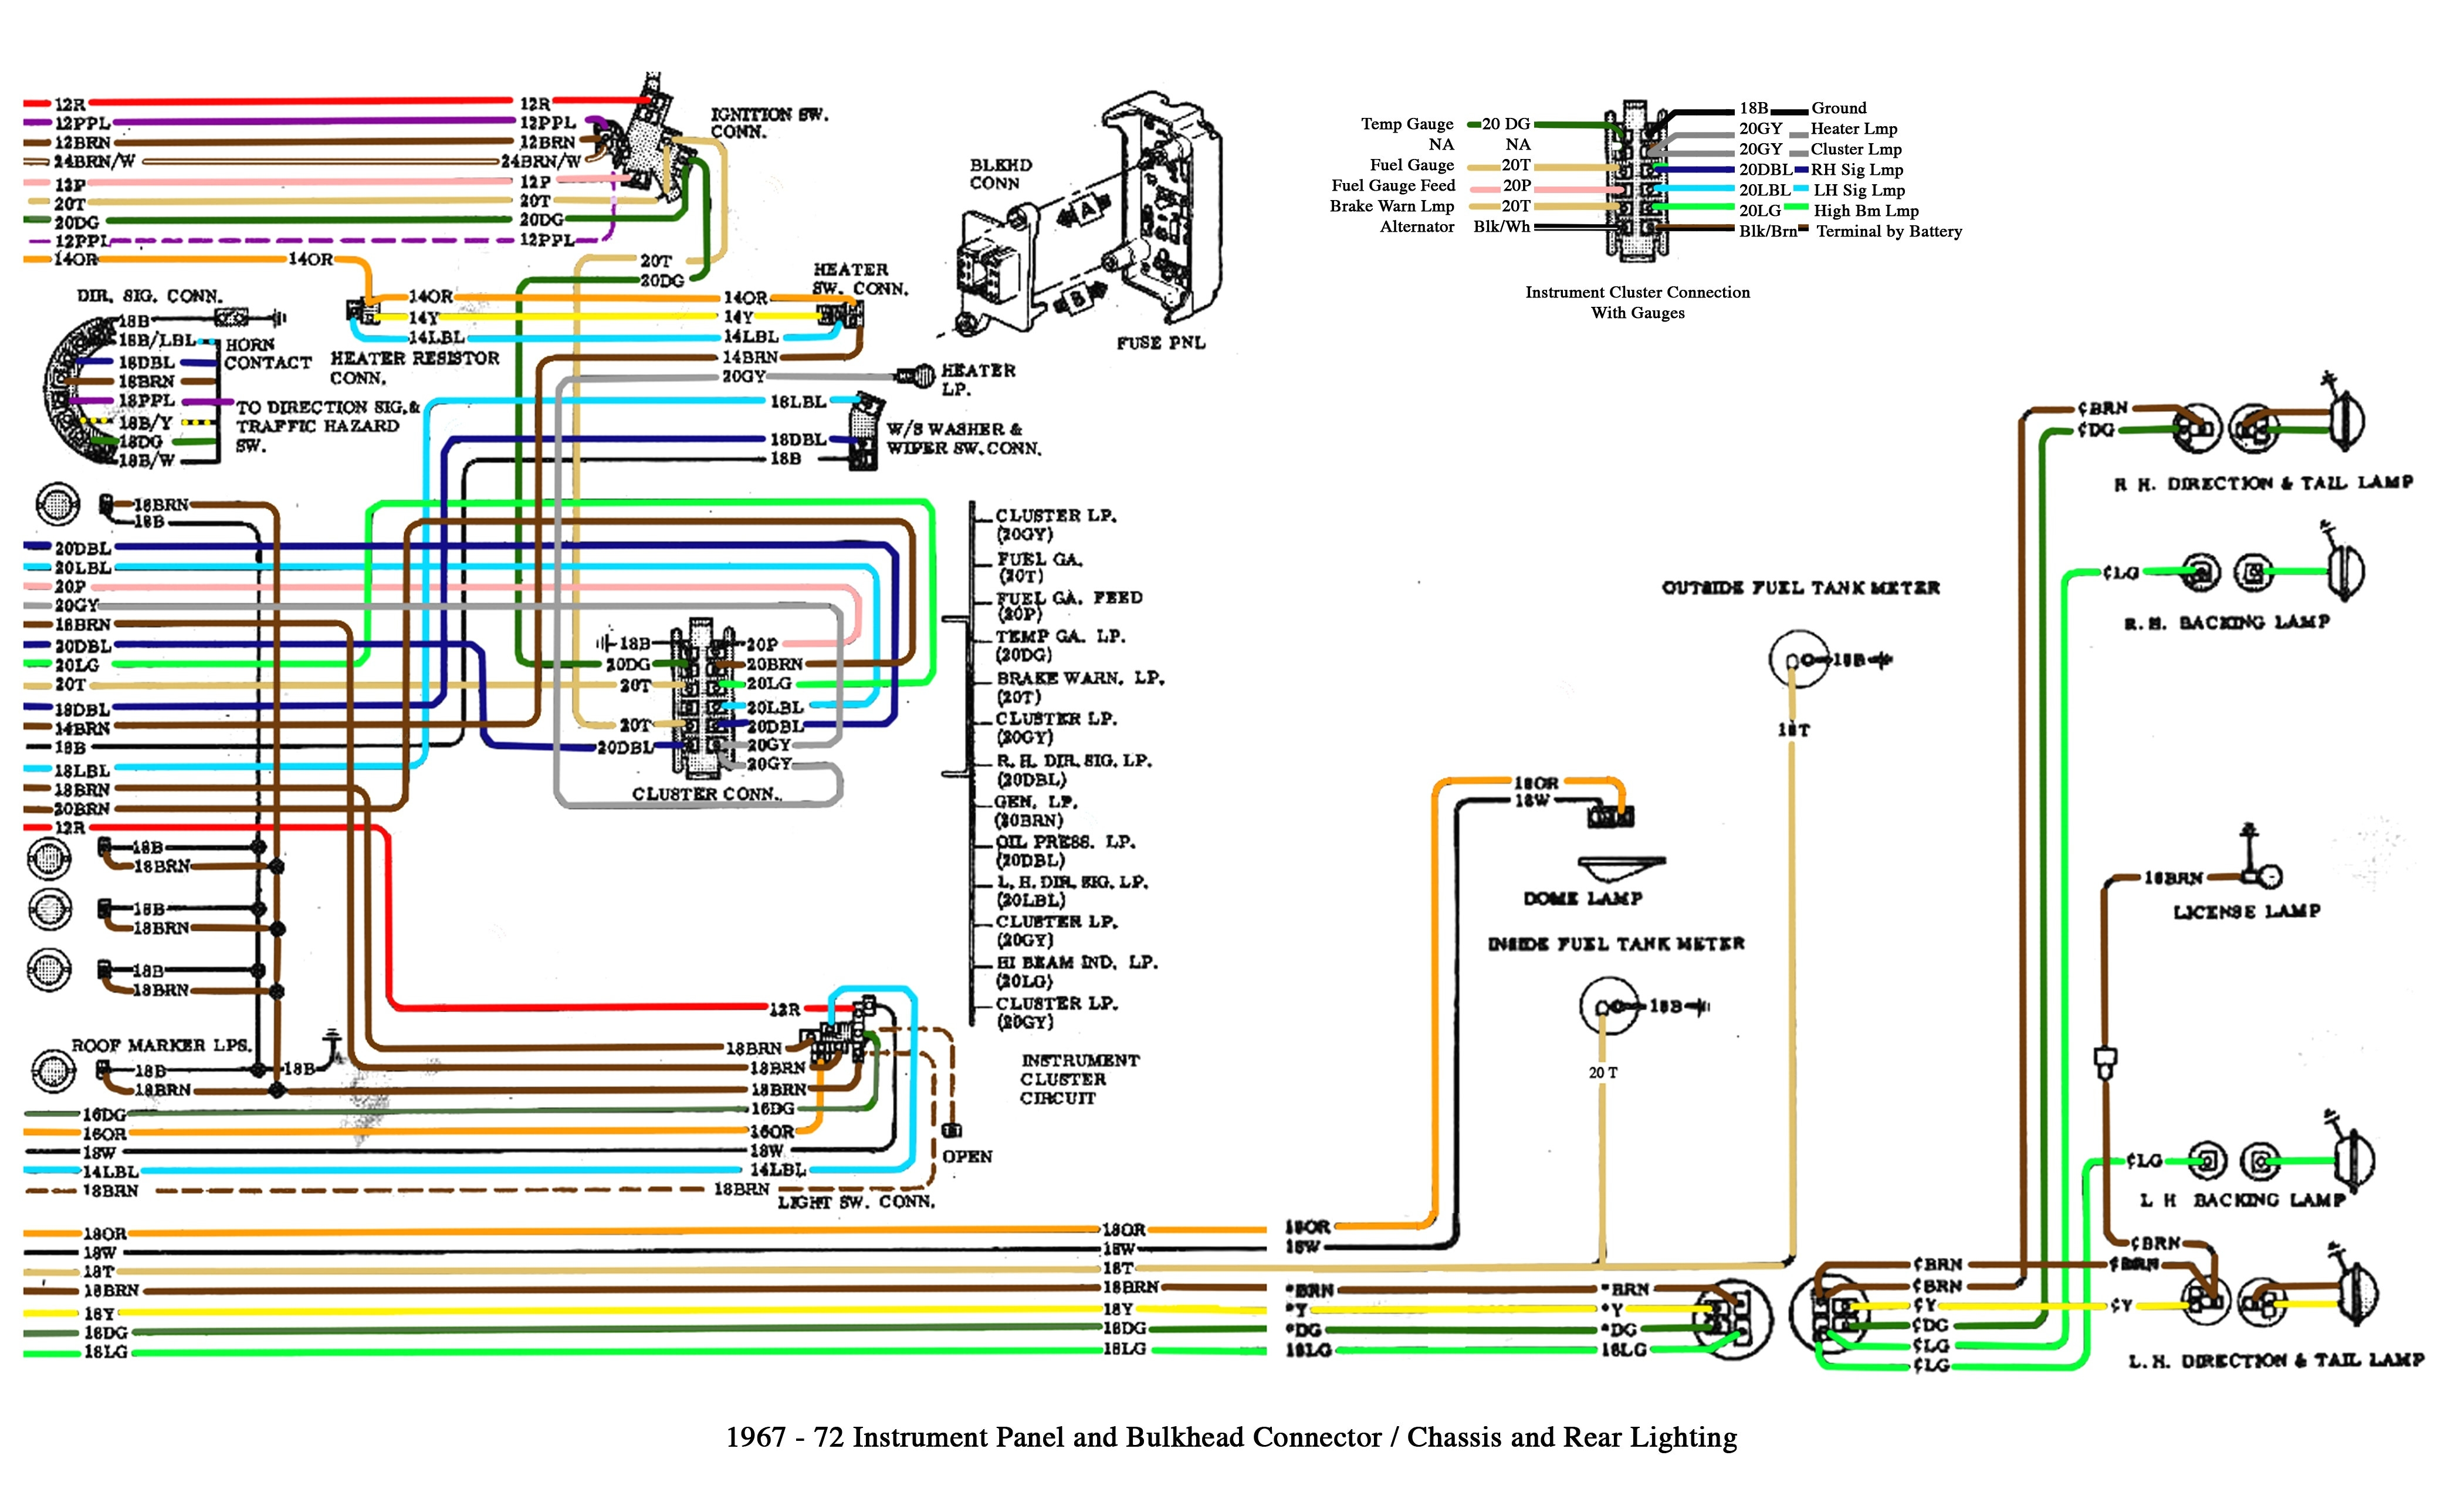 1975 plymouth valiant wiring diagram free download